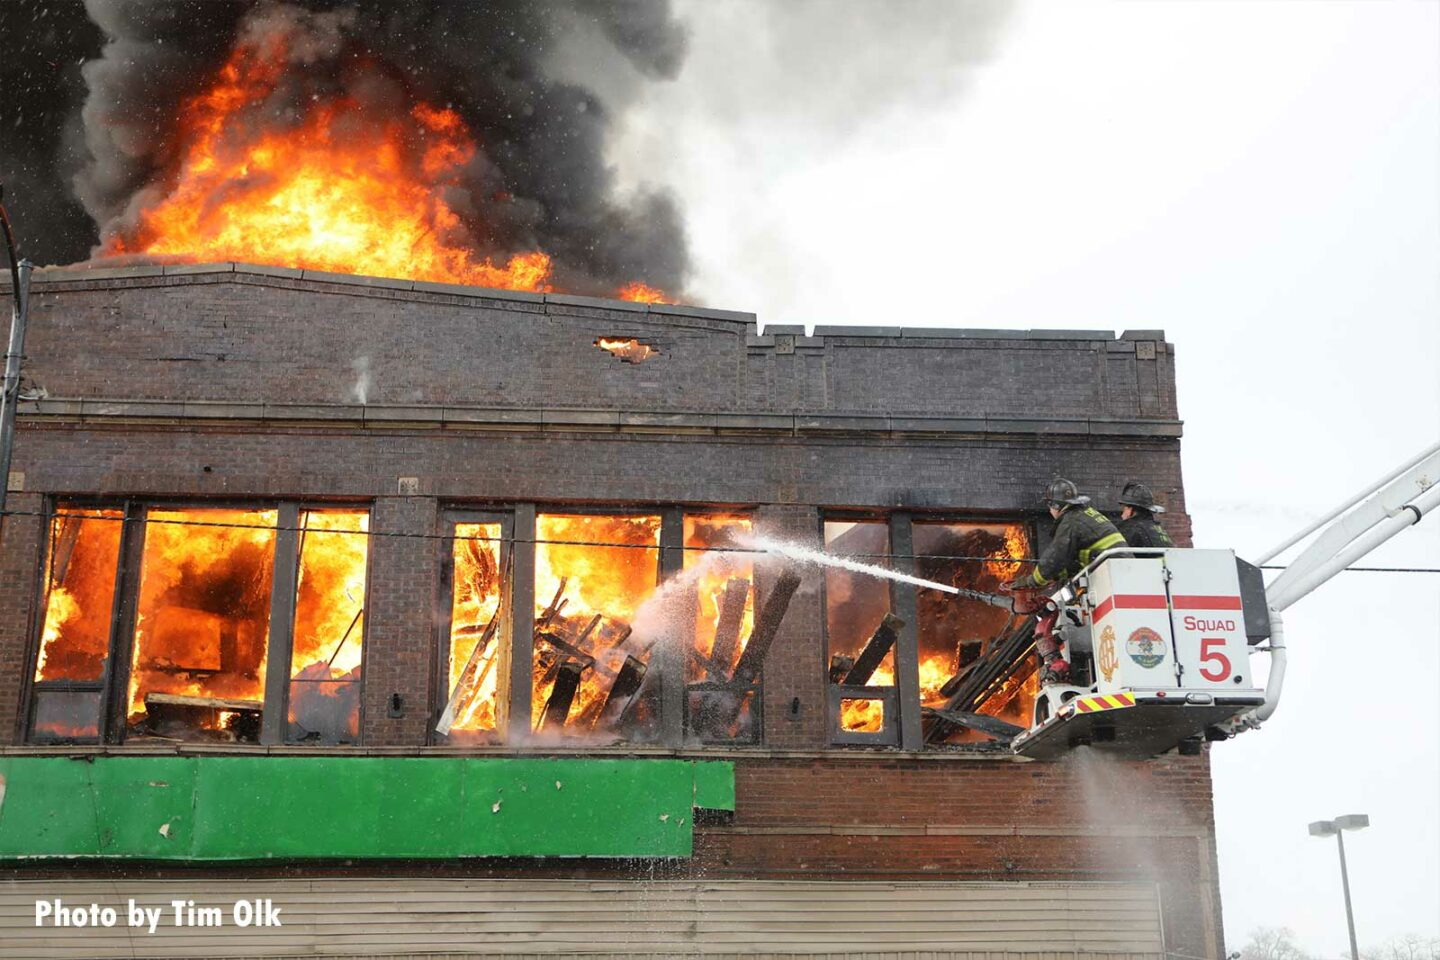 The fire engulfed a building in Roseland on Chicago's far South Side